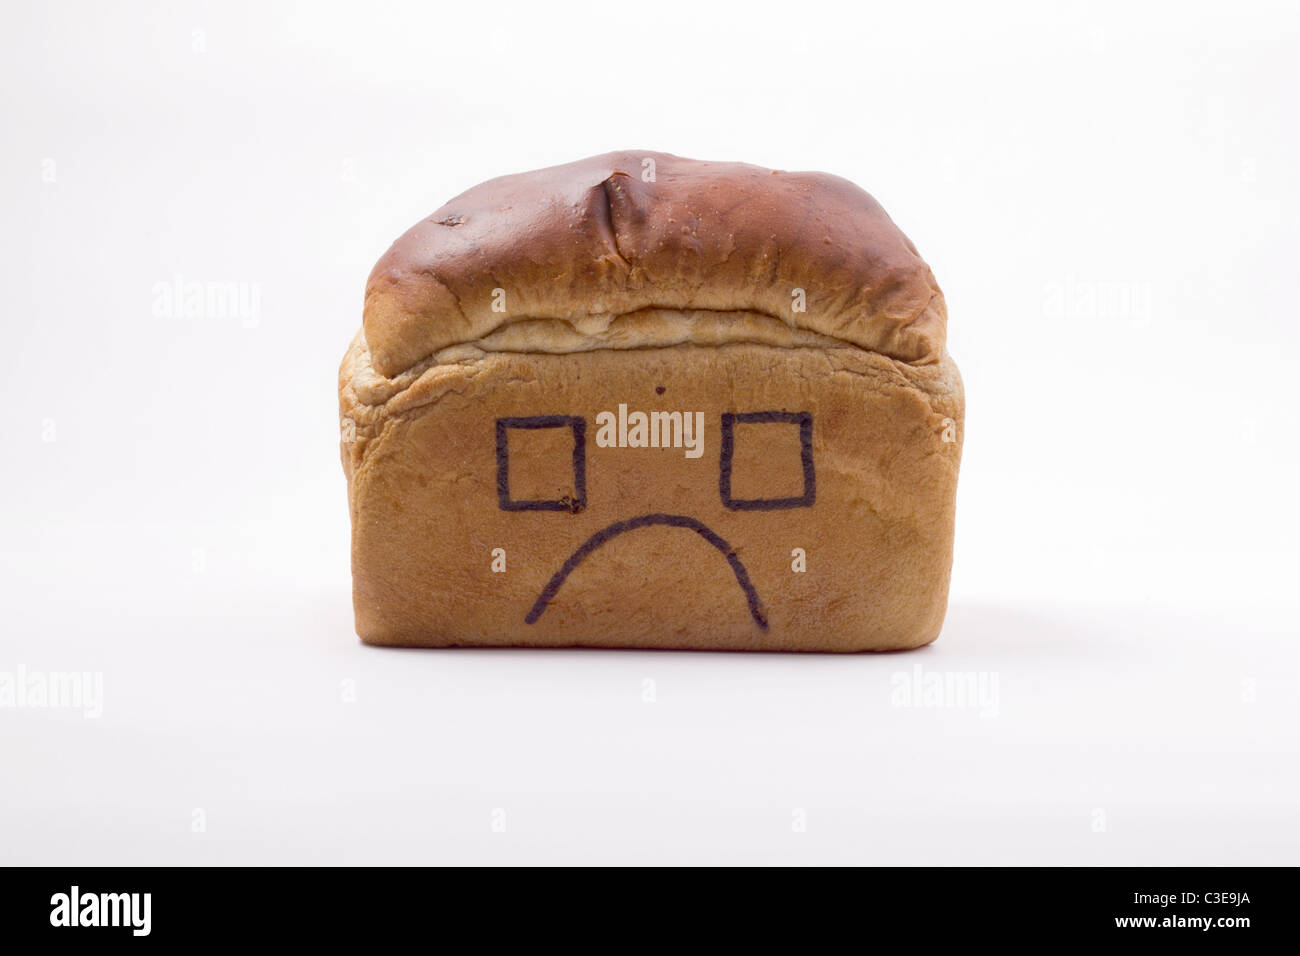 conceptual image of traditional bread with an unhappy face drawn on. Our daily bread, domestic, home life, what - Stock Image